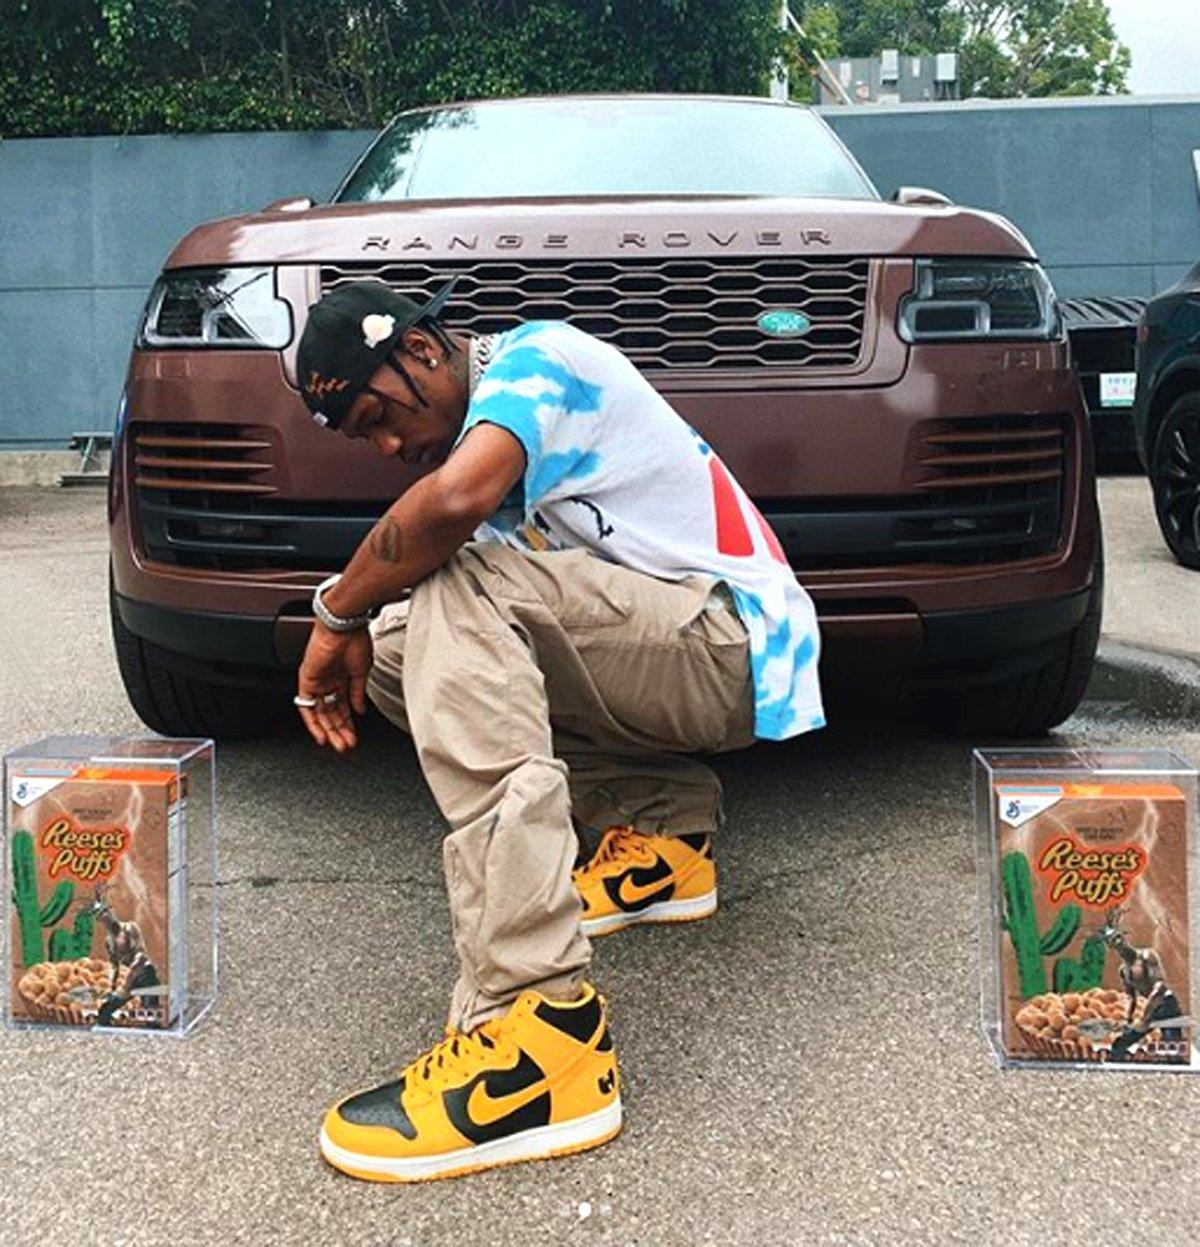 802868d048e3 Travis Scott Gets His Own Cereal Collab With Reese's Puffs